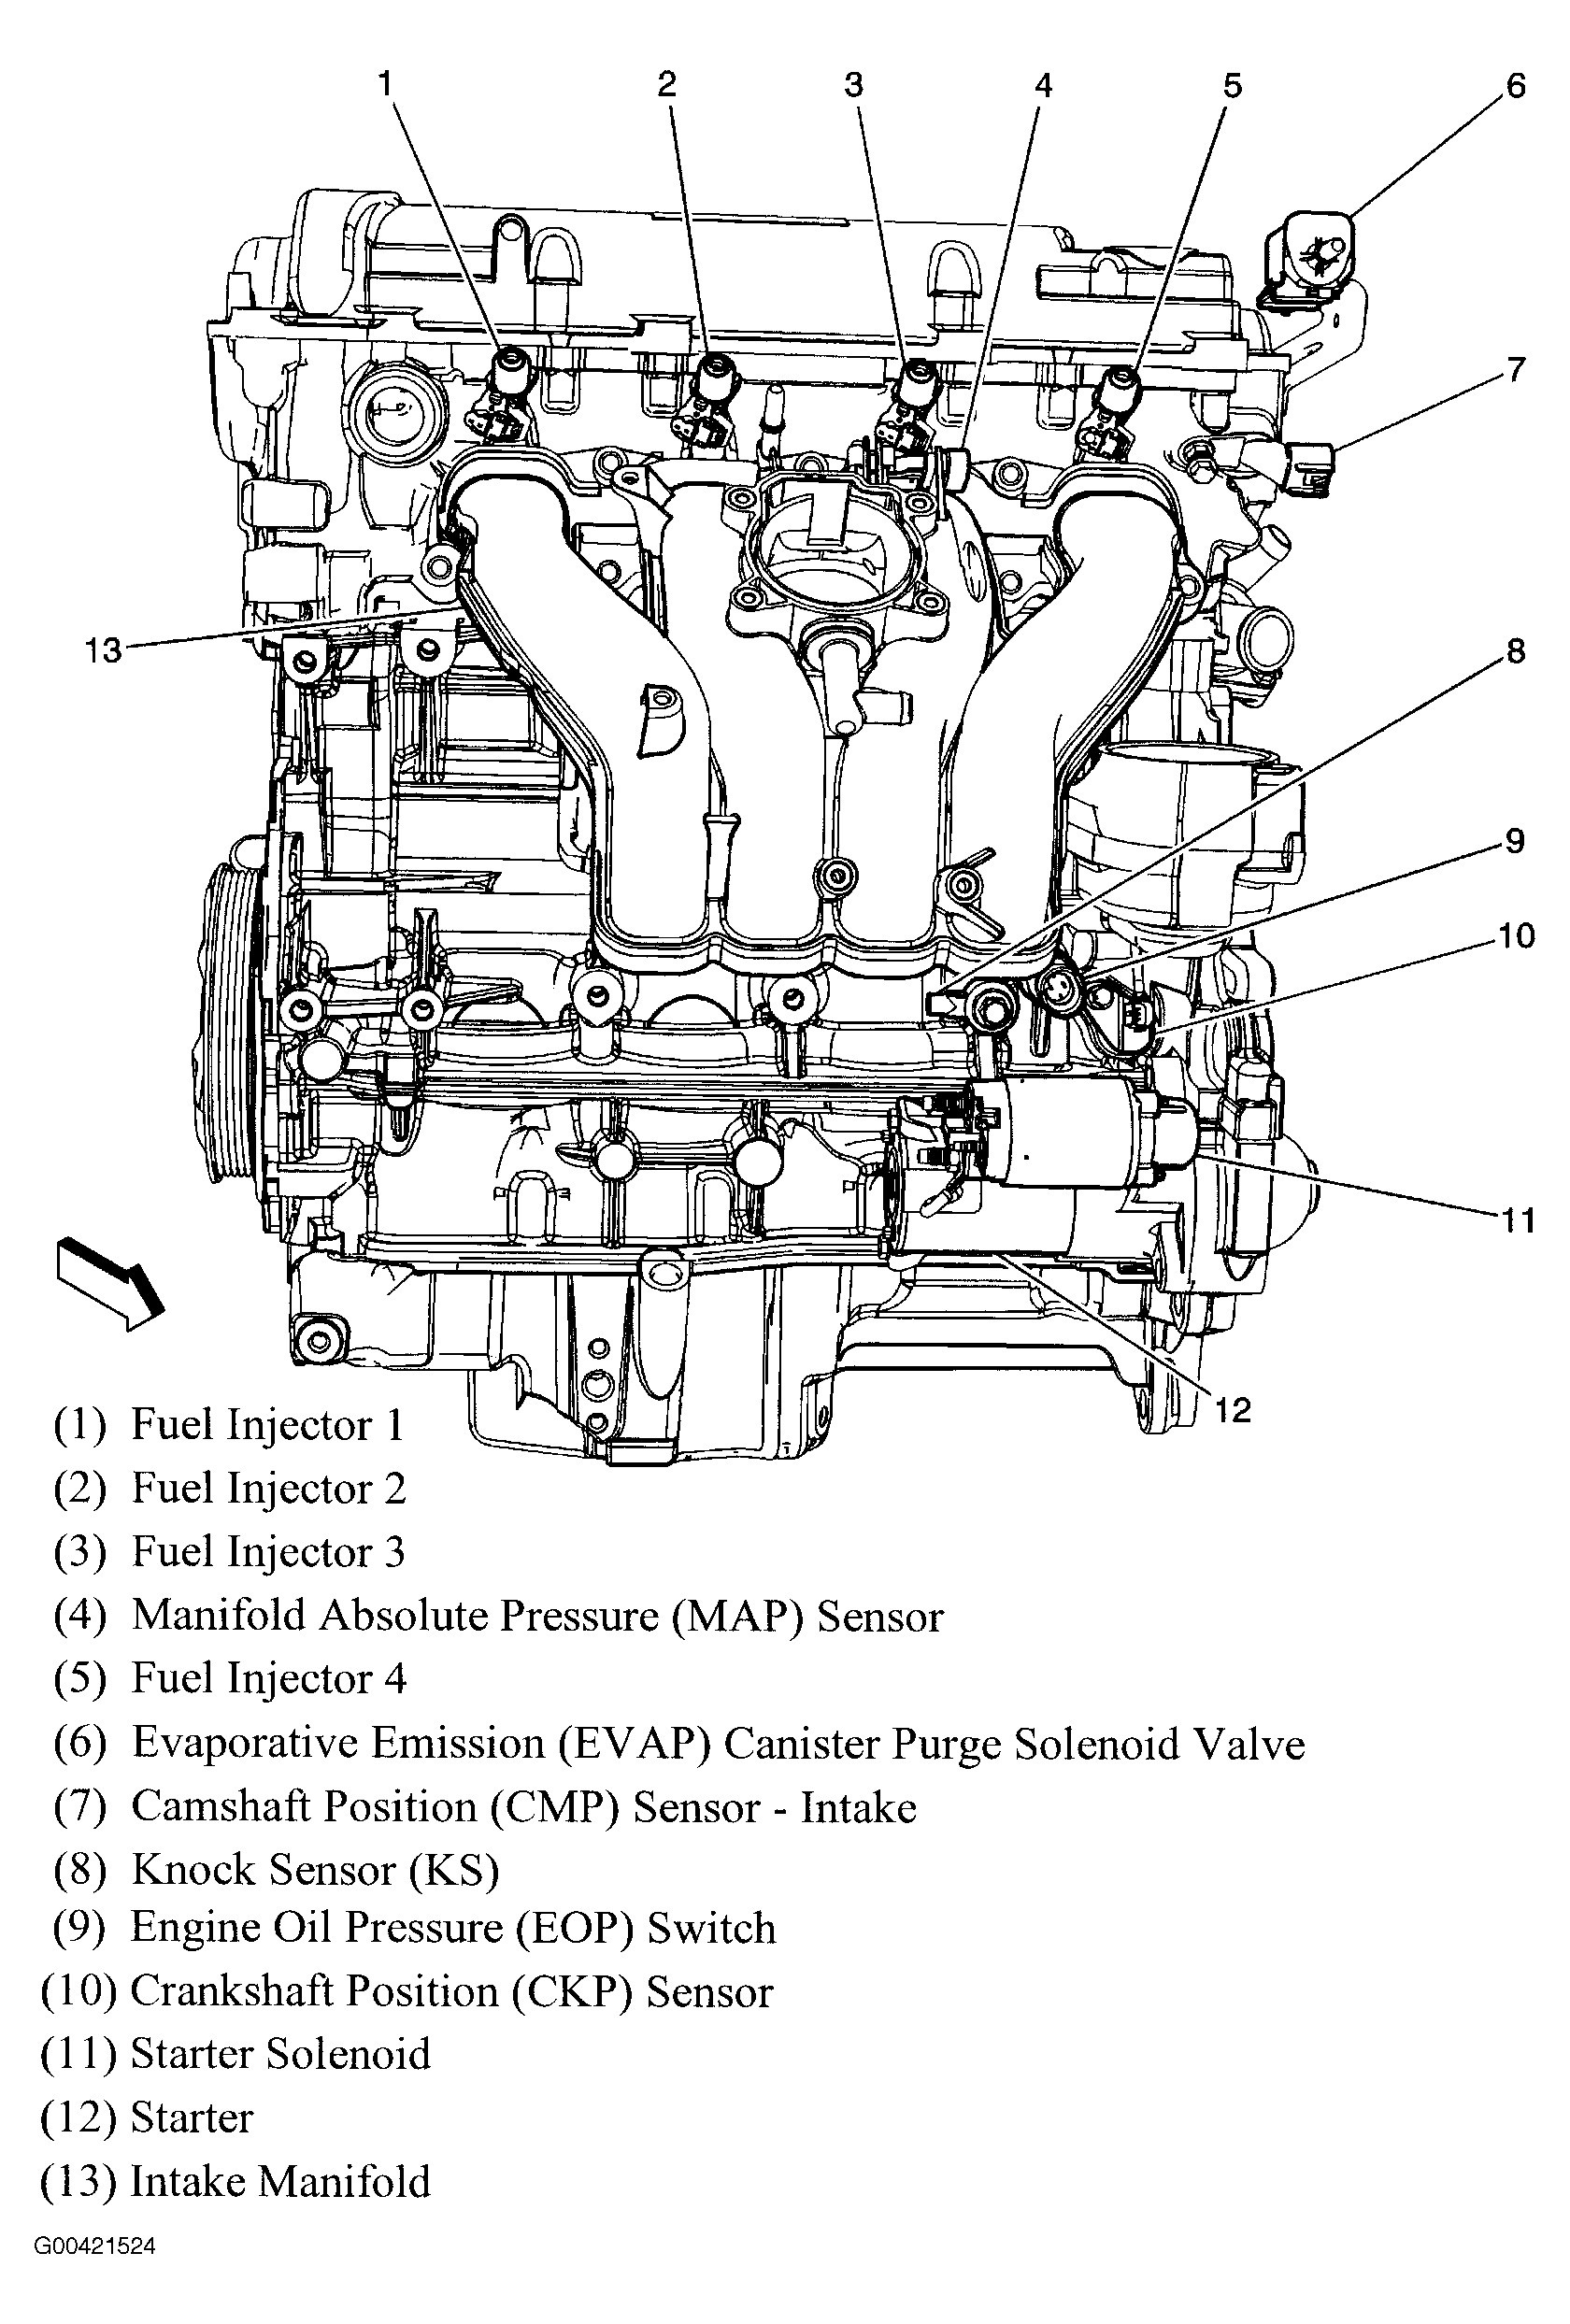 hight resolution of gm 3 4l v6 engine diagram wiring diagram hub 454 mercruiser engine diagram 4 3 v6 cylinder engine diagram